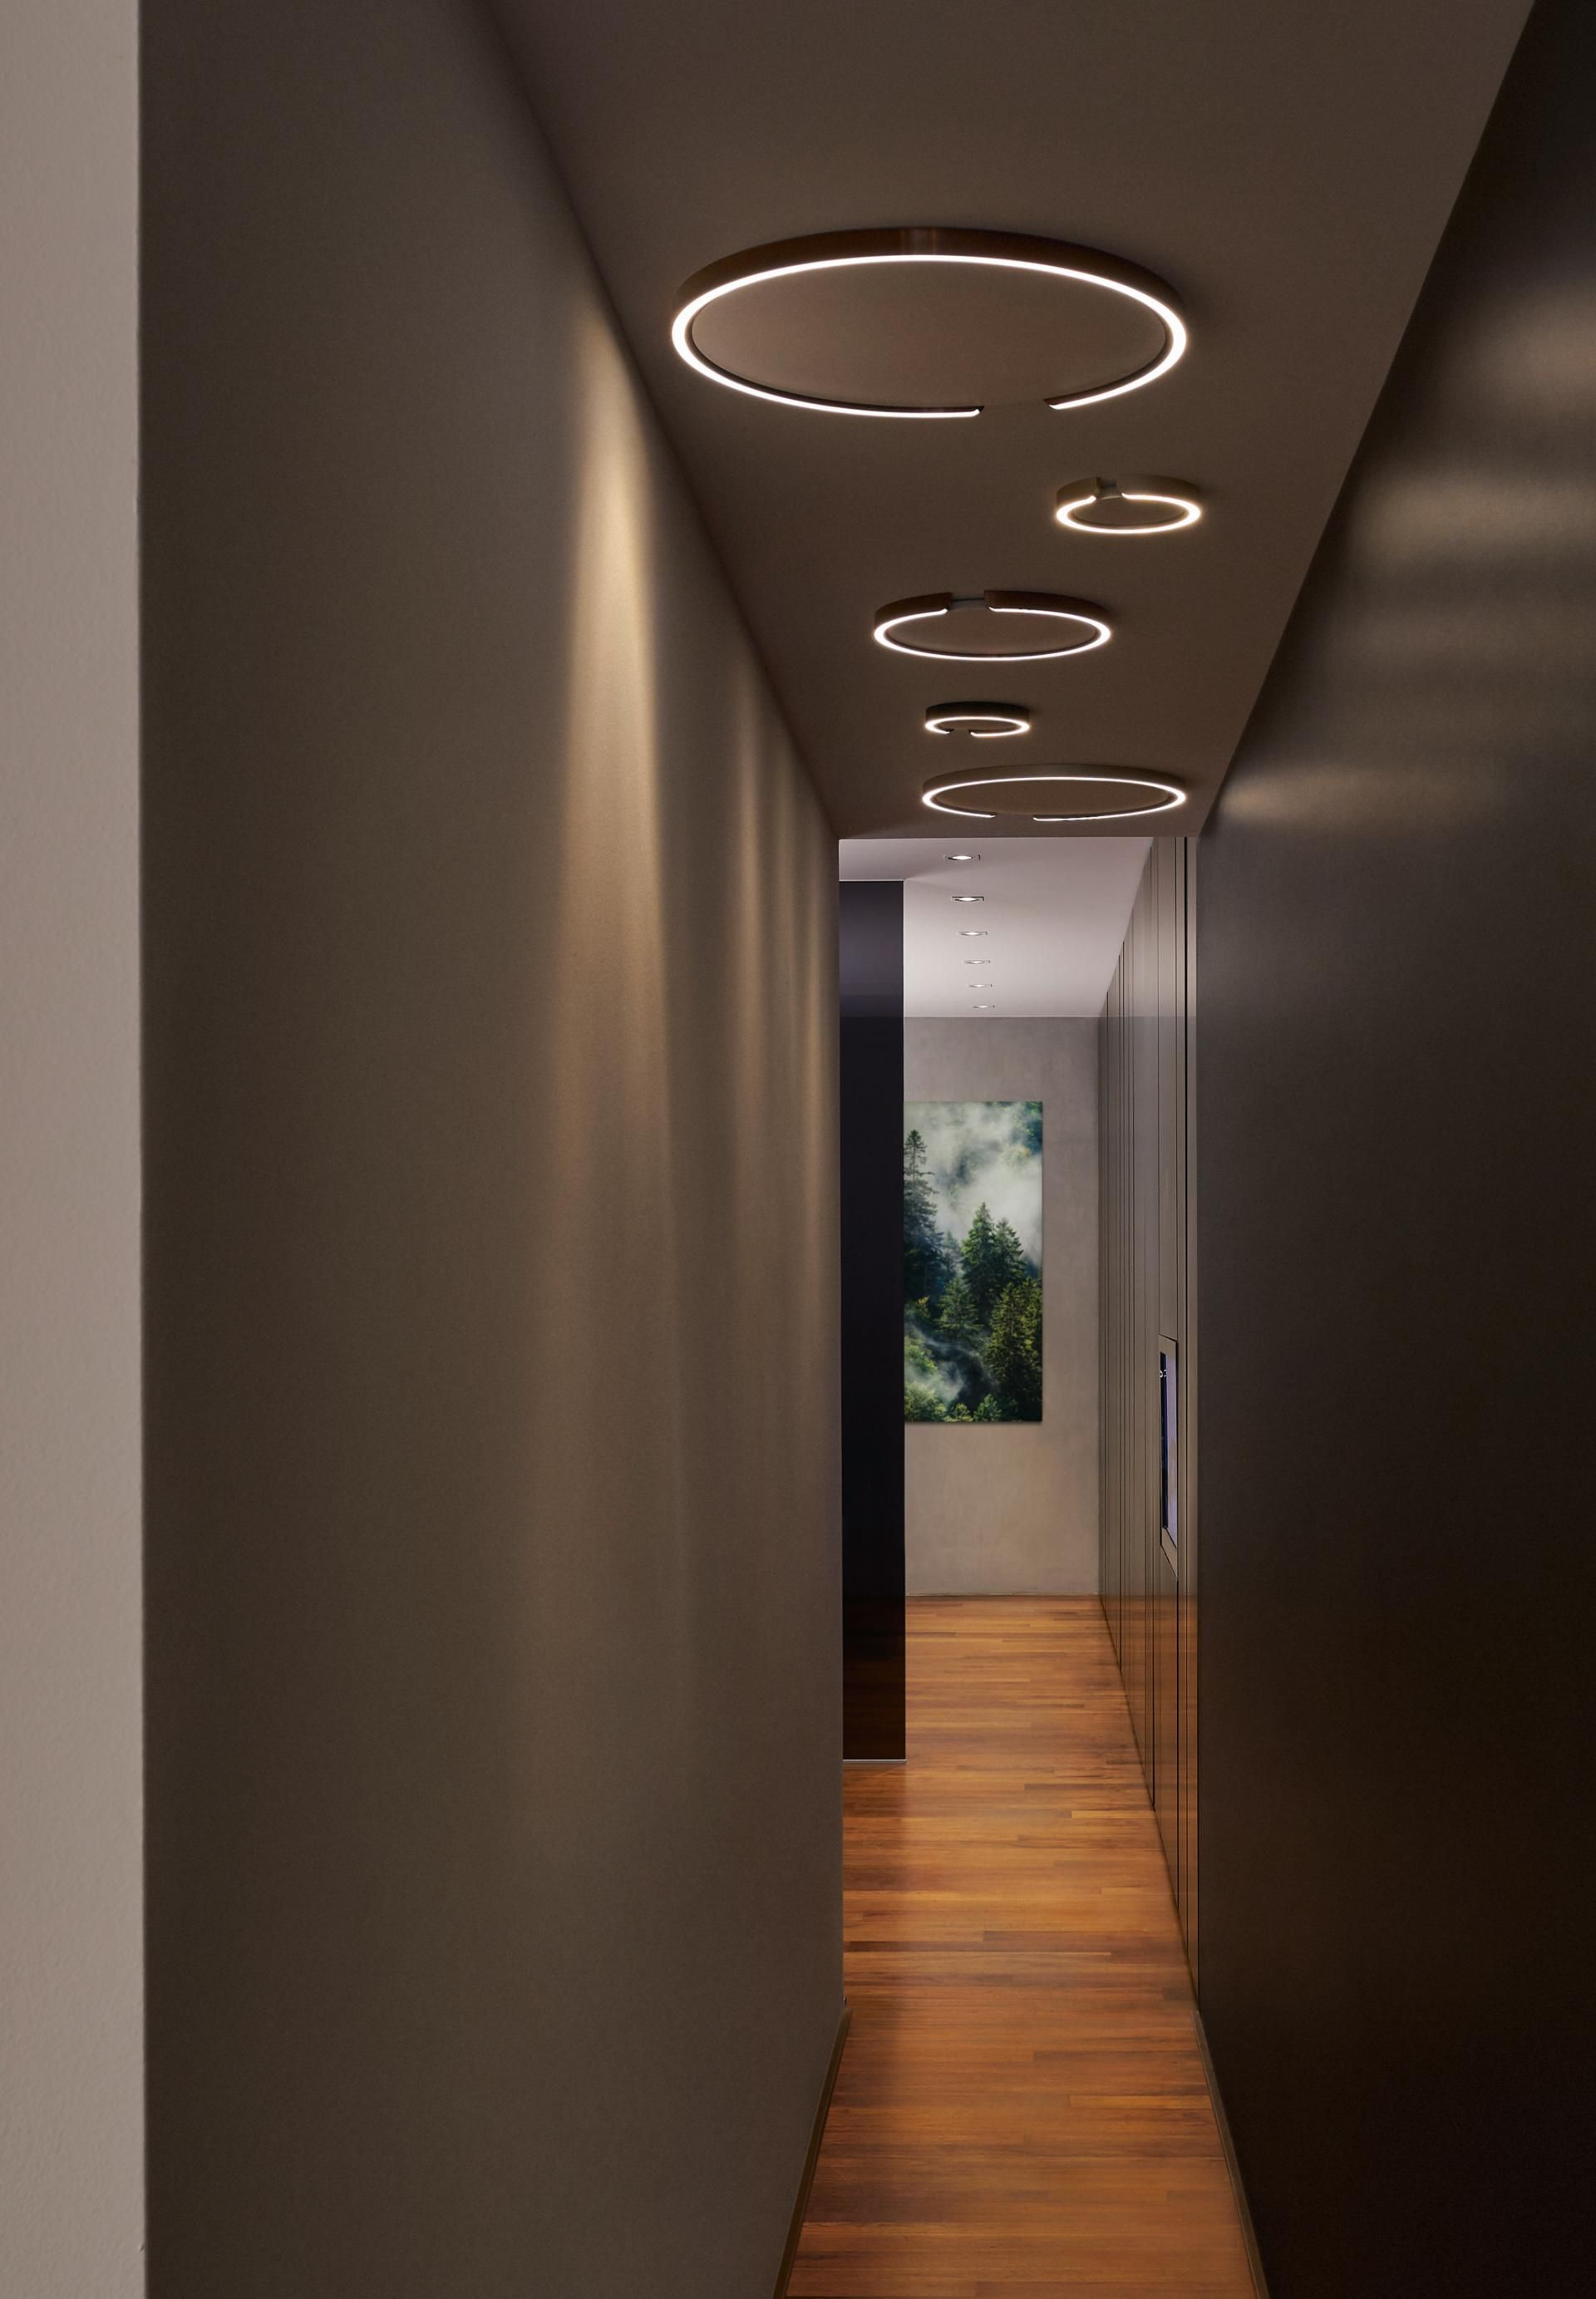 Image result for suspended ceilings in the  hallway of the house